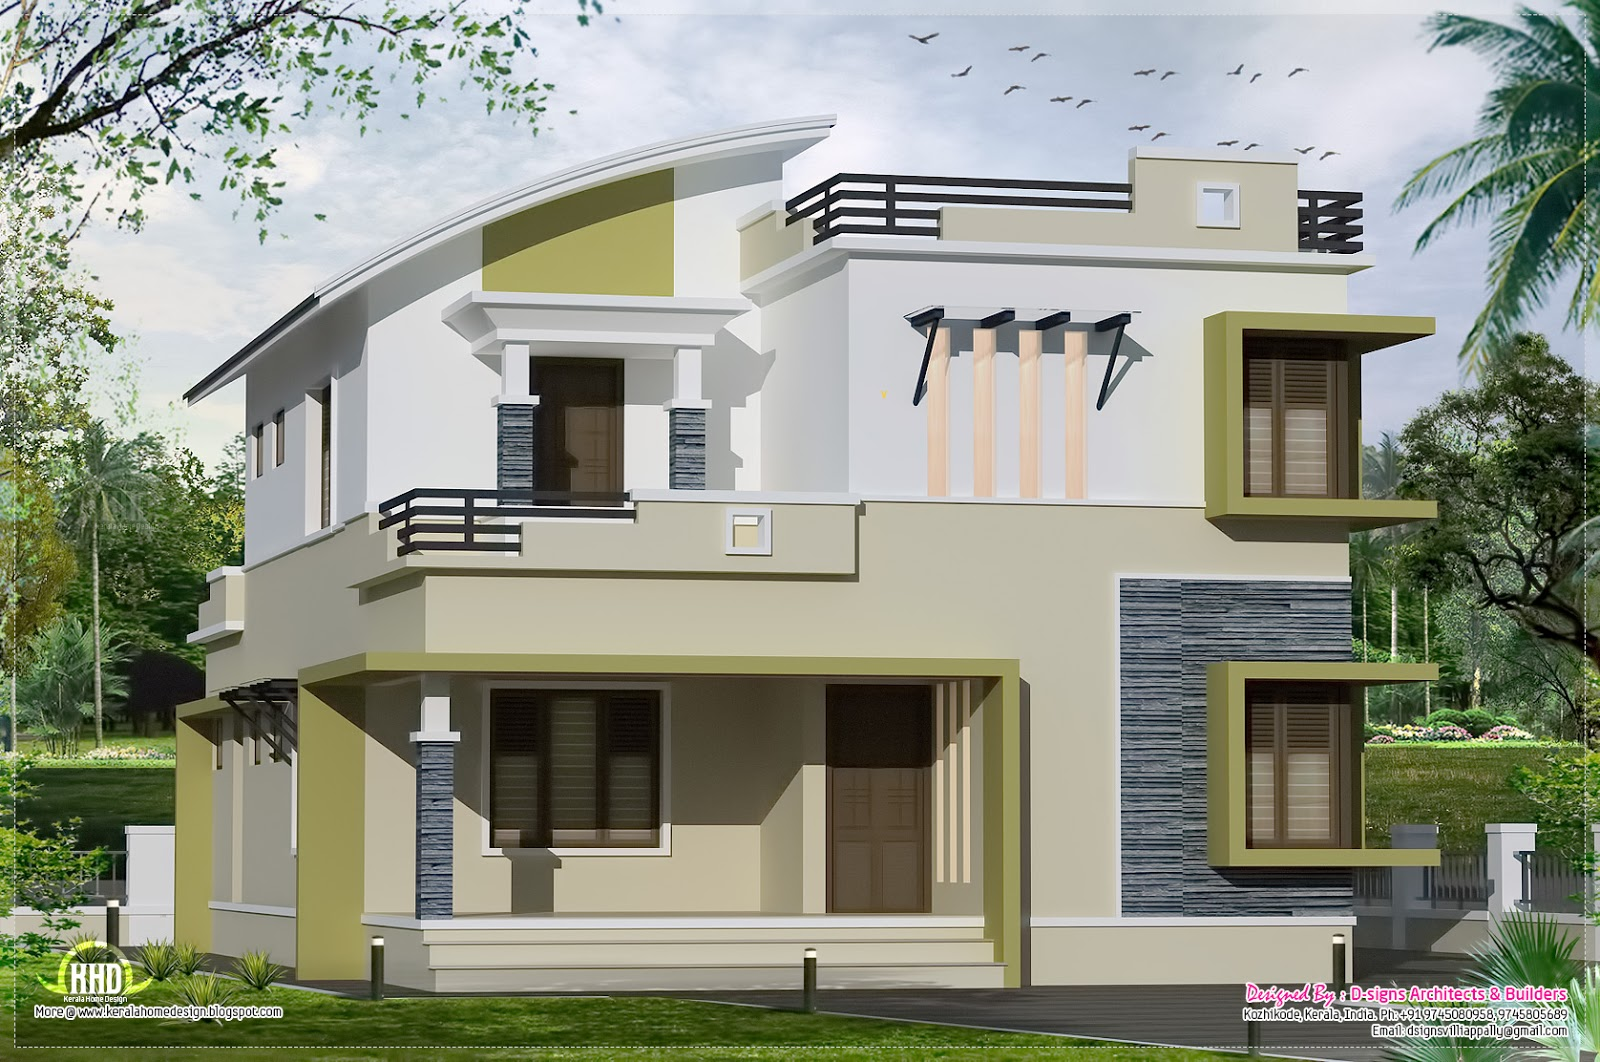 28 delightful two floor house design home building plans